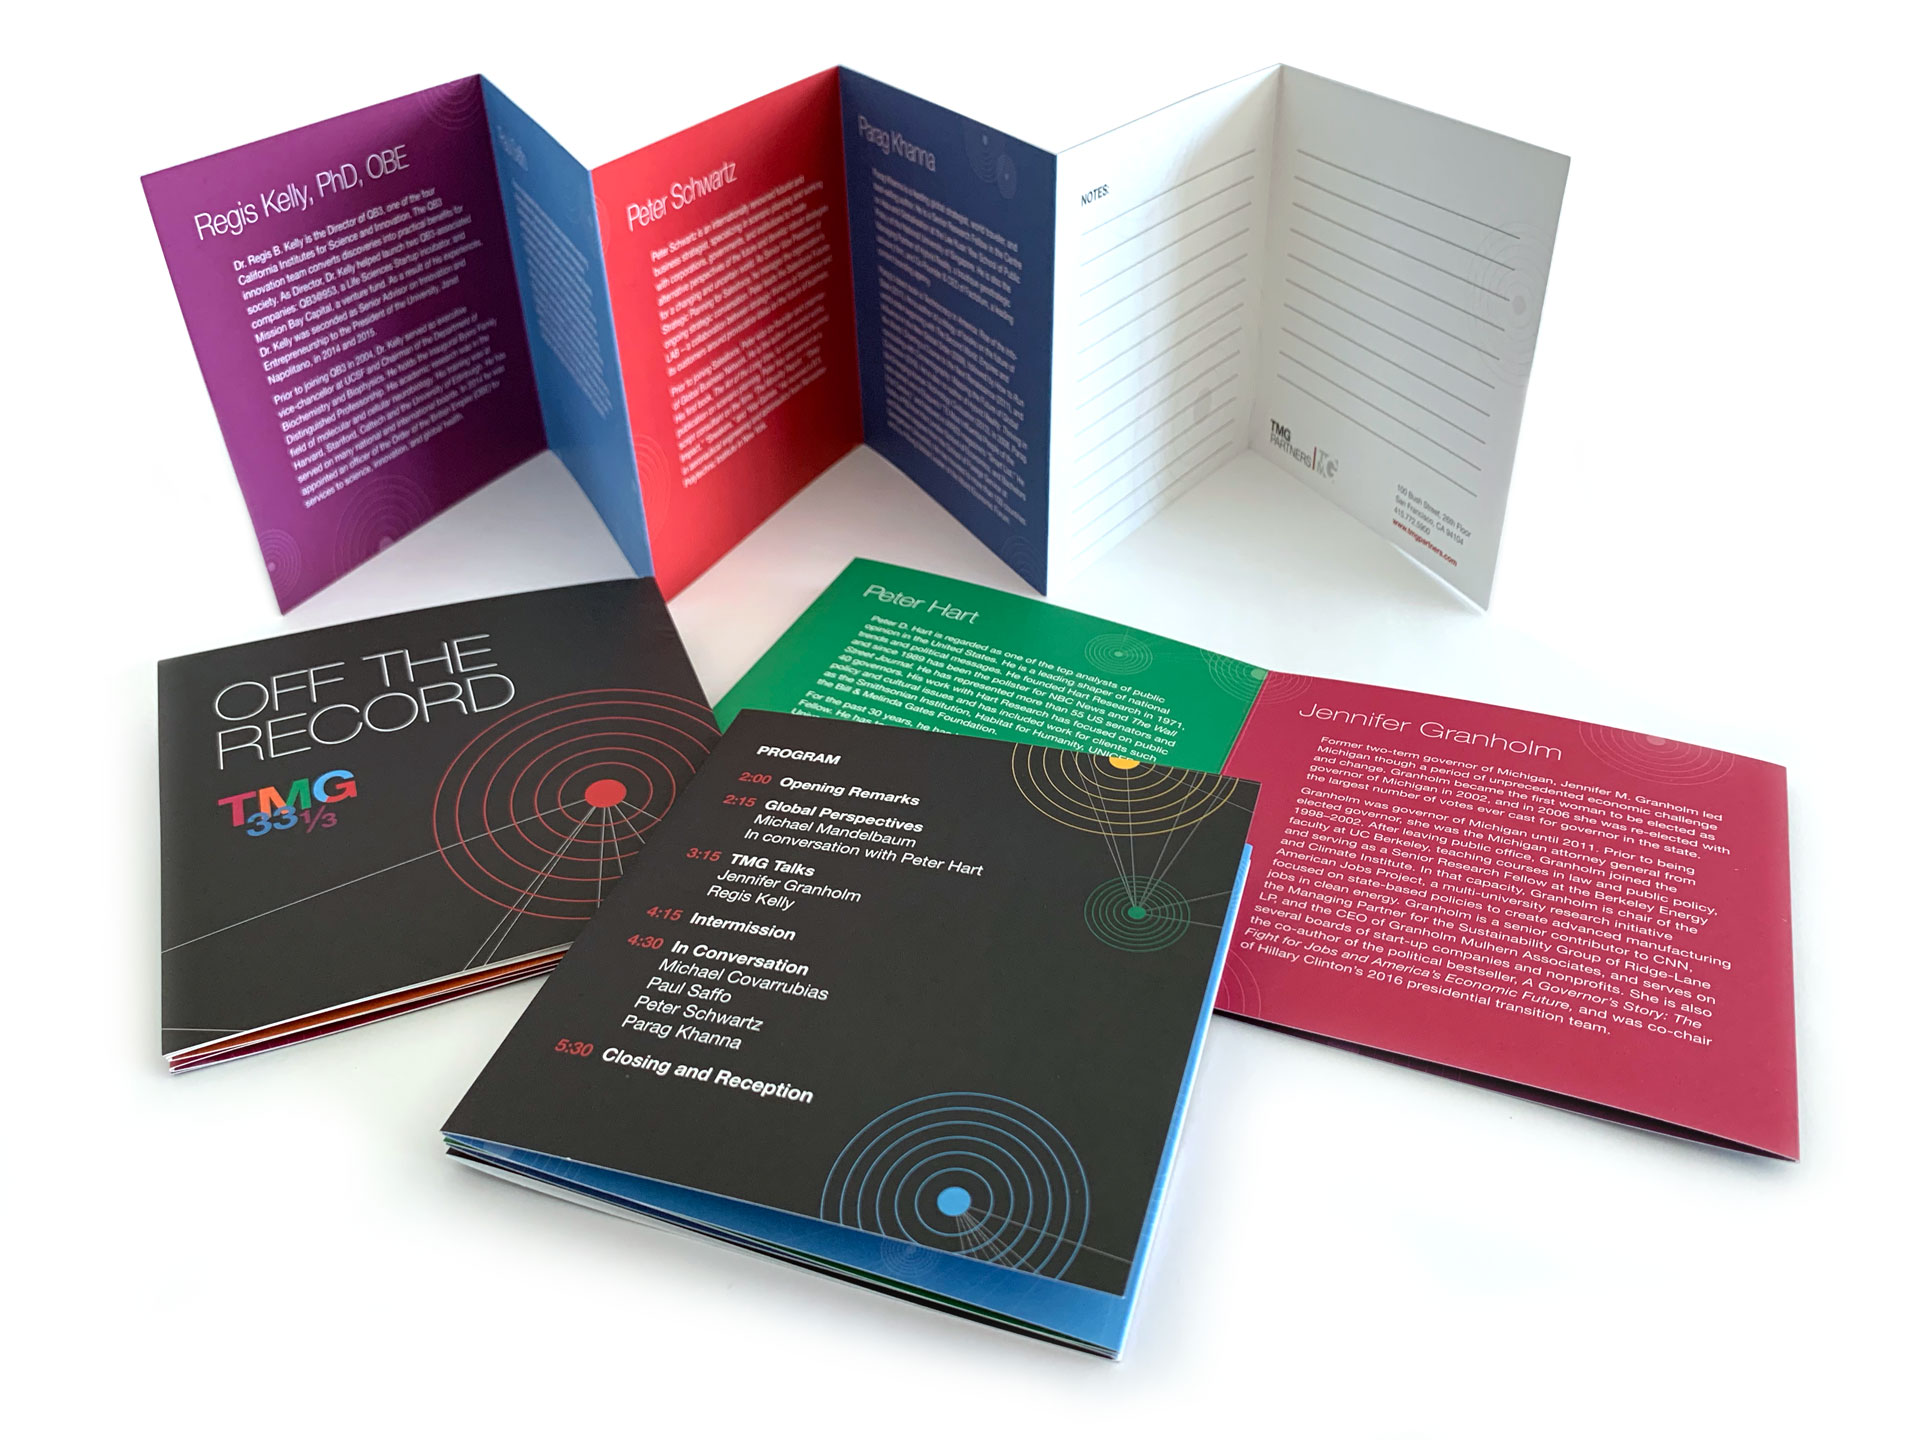 Photograph of folded programs showing front, back, and expanded to show speaker biographies.